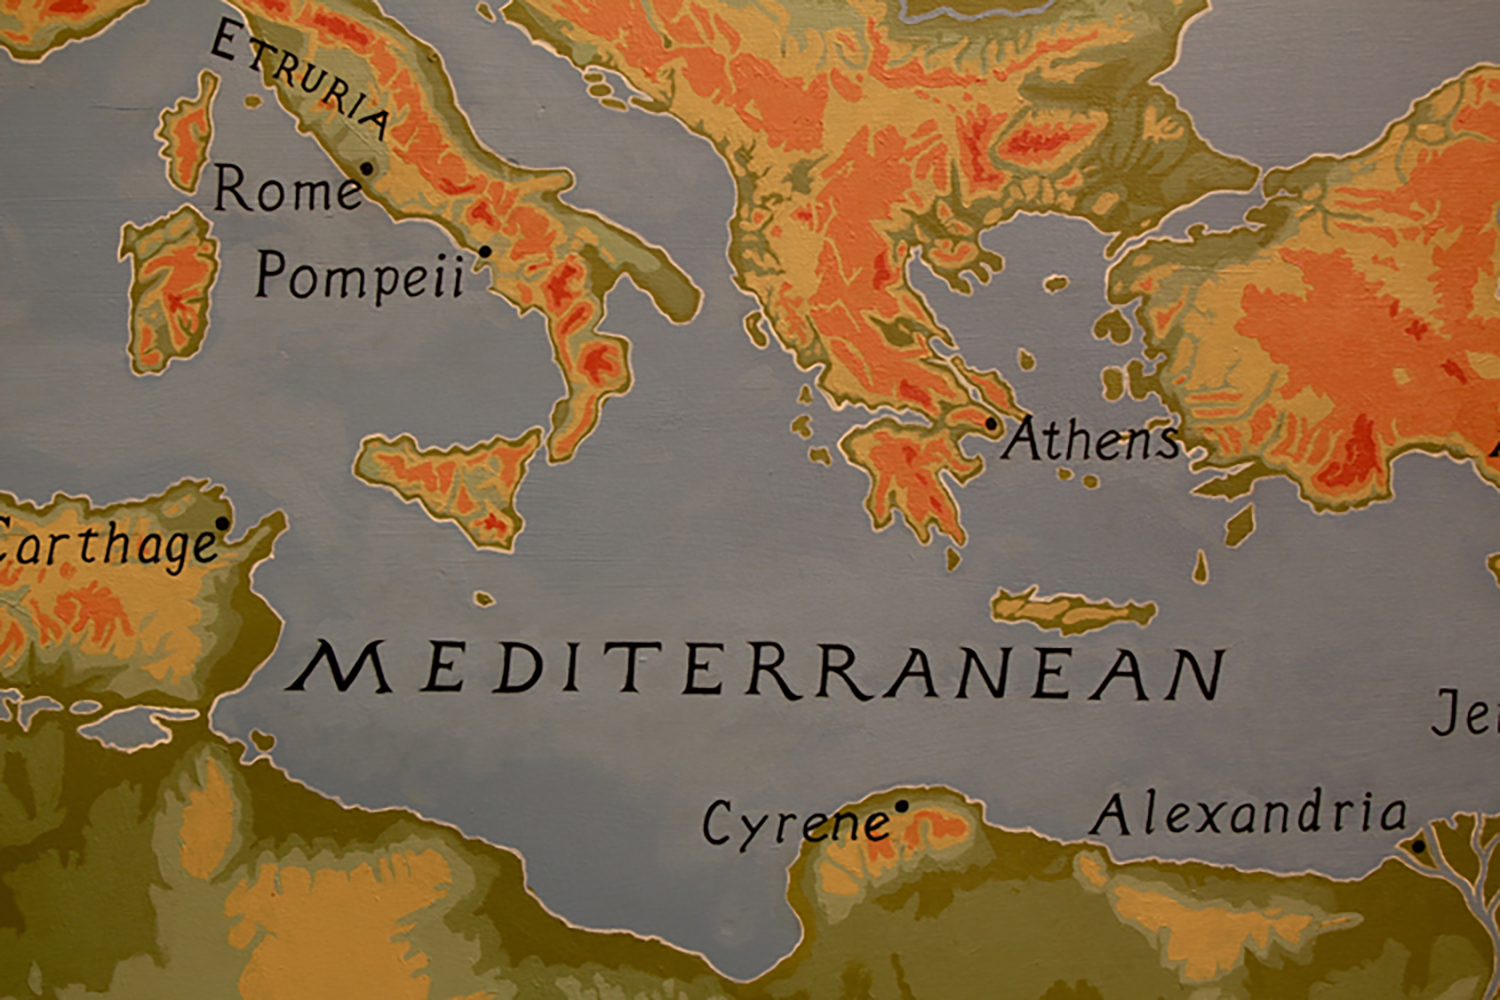 Figure 9: Map Showing Cyrene, Athens, and Rome.